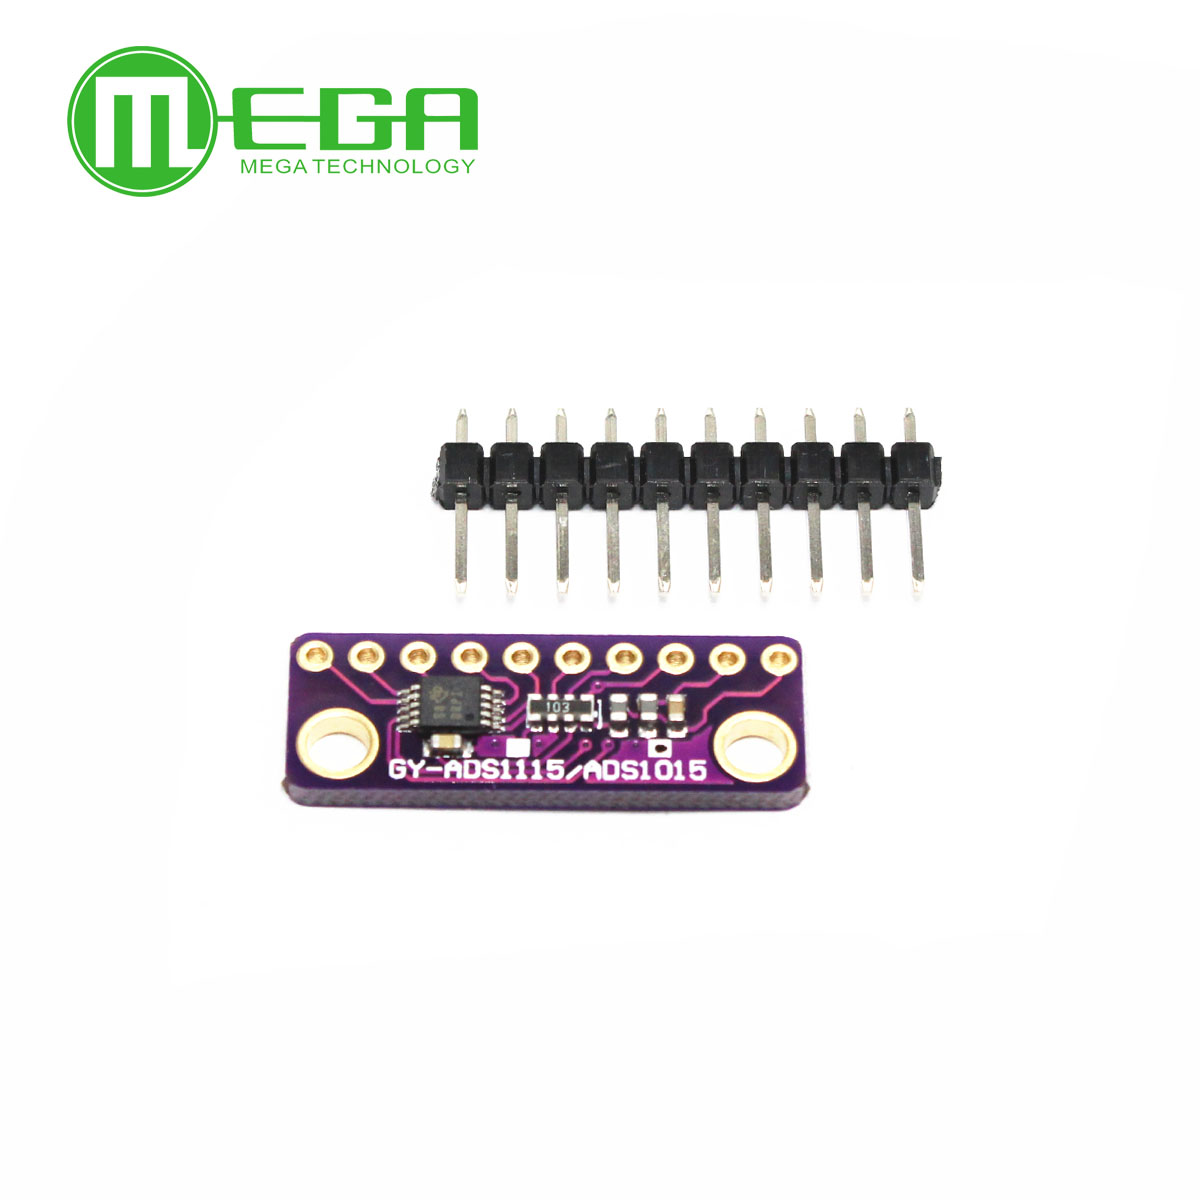 I2C ADS1115 ADS1015 16 Bit ADC 4 channel Module with Programmable Gain  Amplifier 2 0V to 5 5V ~